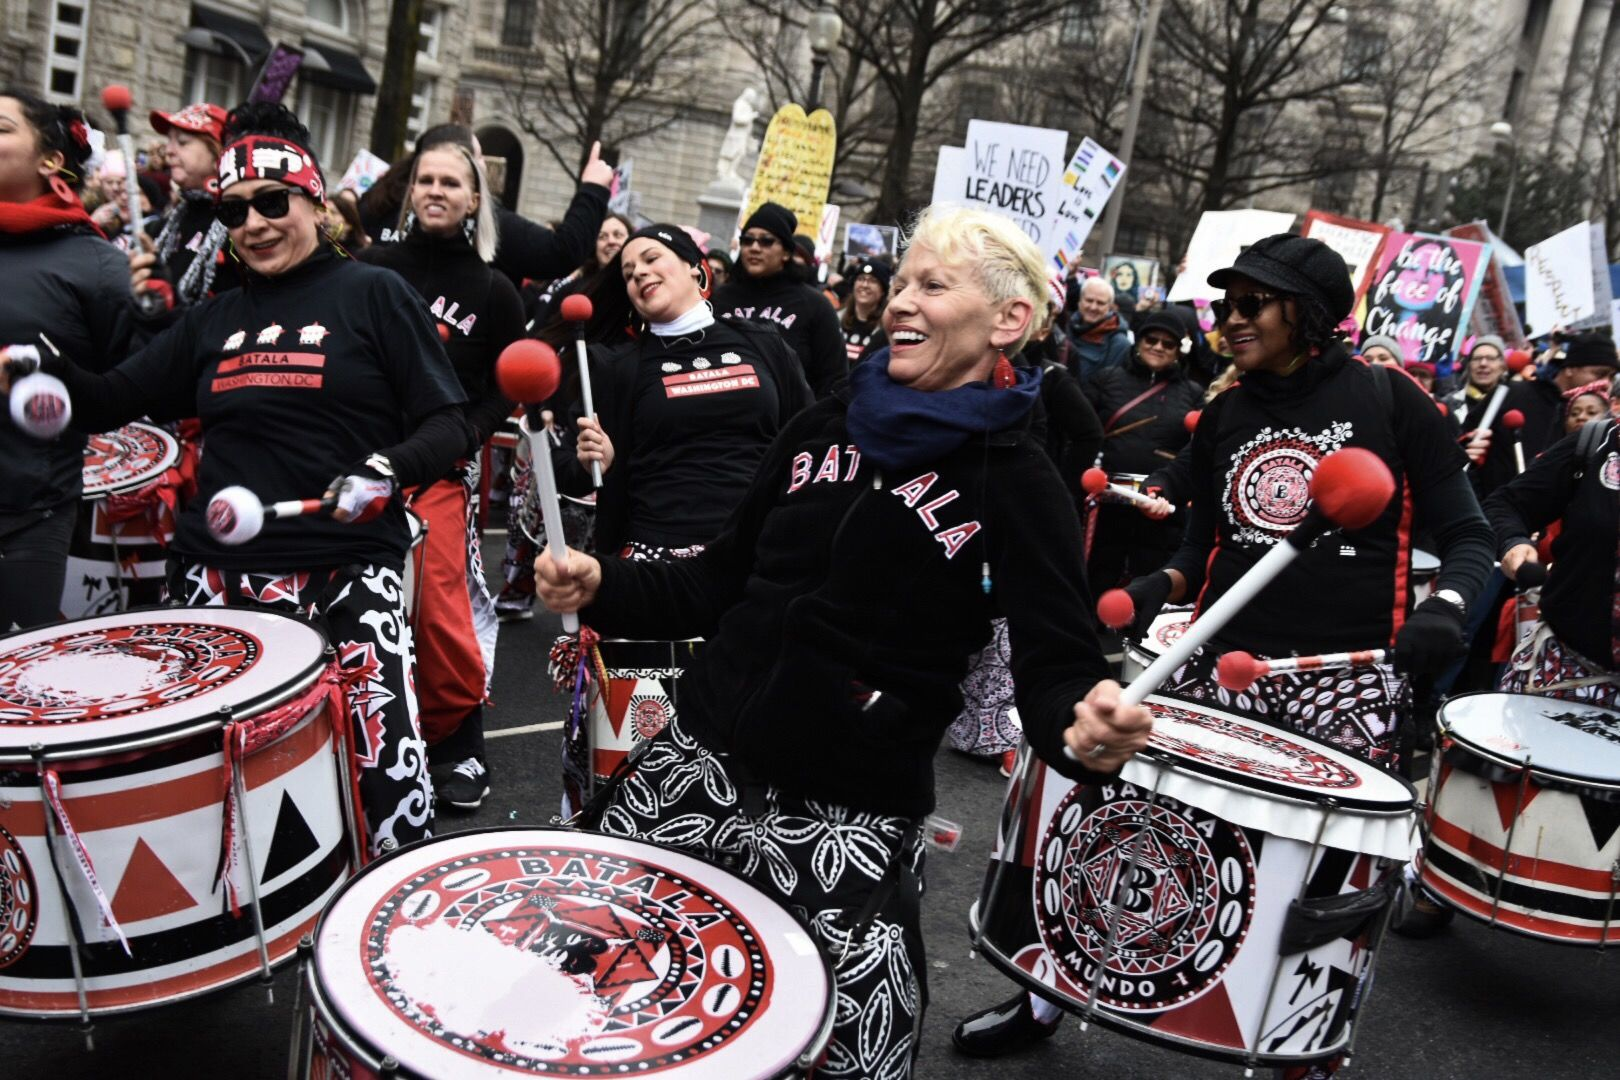 """Drummers with Batala Washington, an """"all-women Afro-Brazilian band that plays Samba-Reggae rhythms,"""" played non-stop for the duration of the march near Freedom Plaza. (WTOP/Alejandro Alvarez)"""